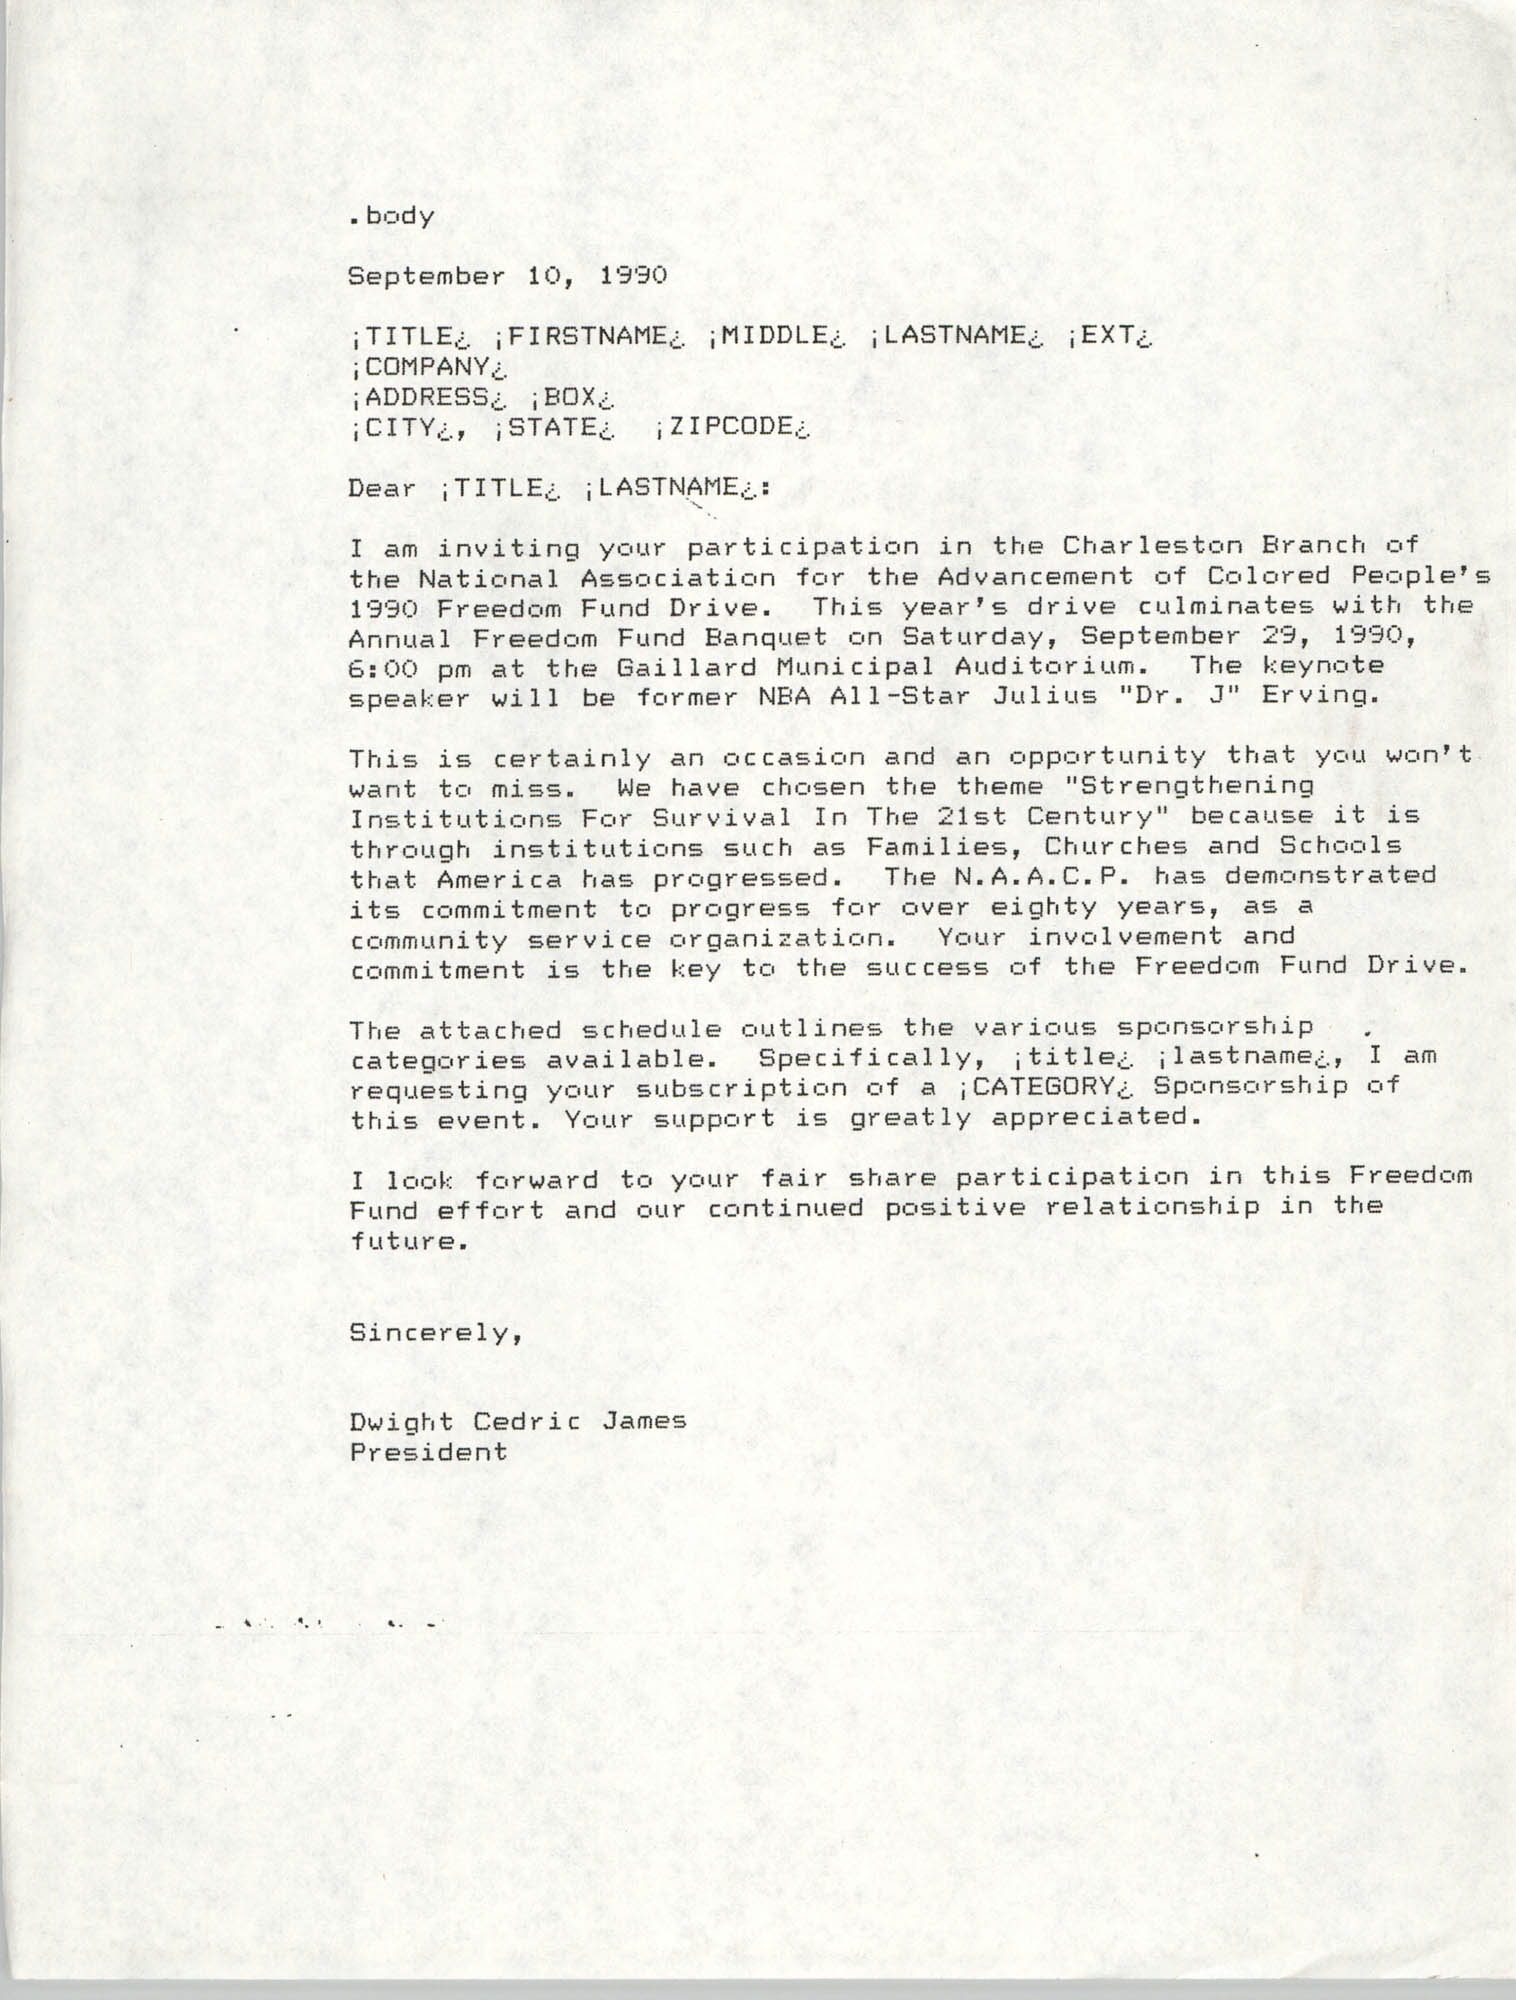 Template, Letter from Dwight C. James, September 10, 1990